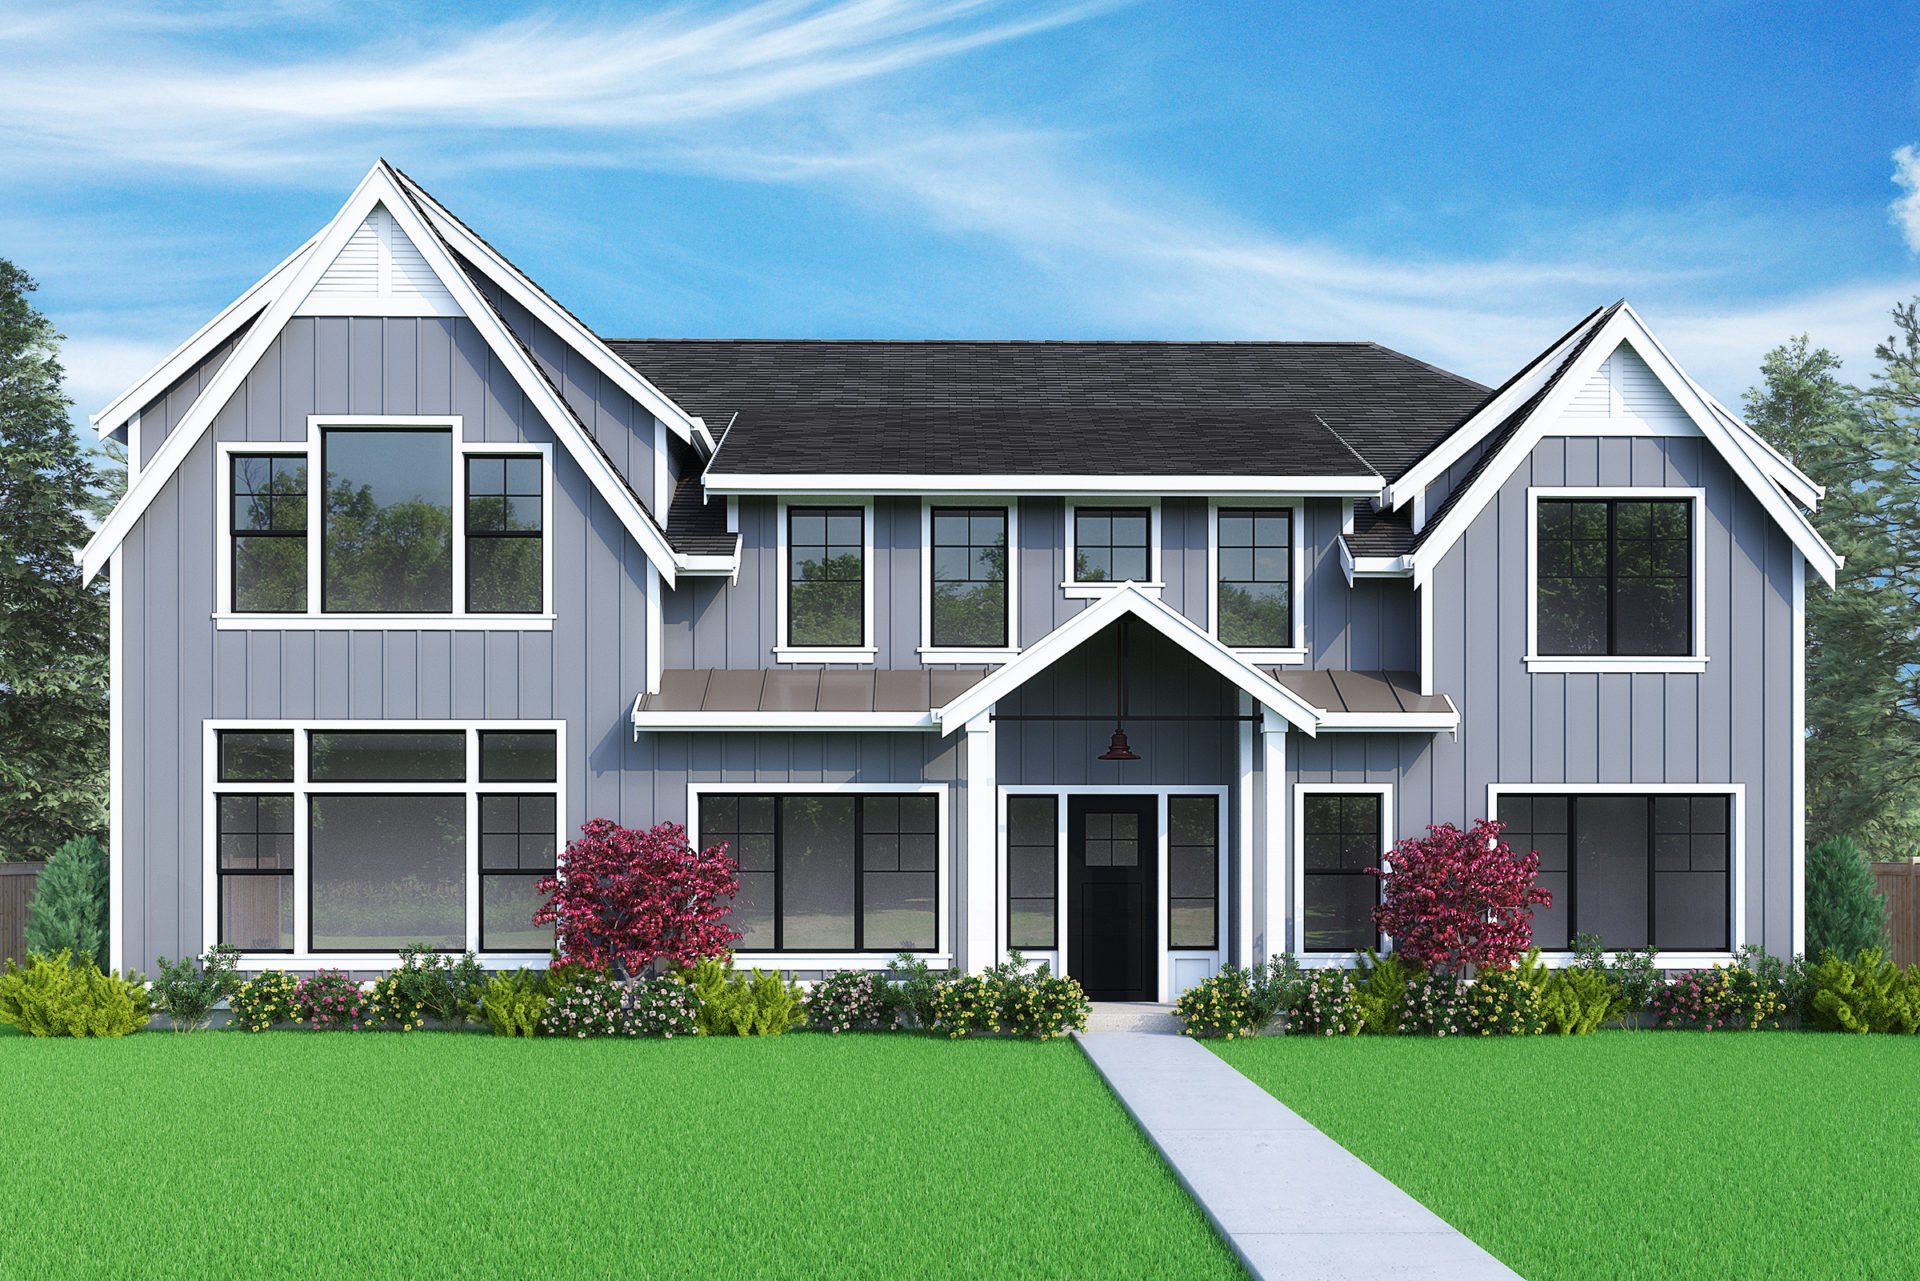 View our new luxury home construction on 12993 SE 7th Pl, in Bellevue, WA from MN Custom Homes